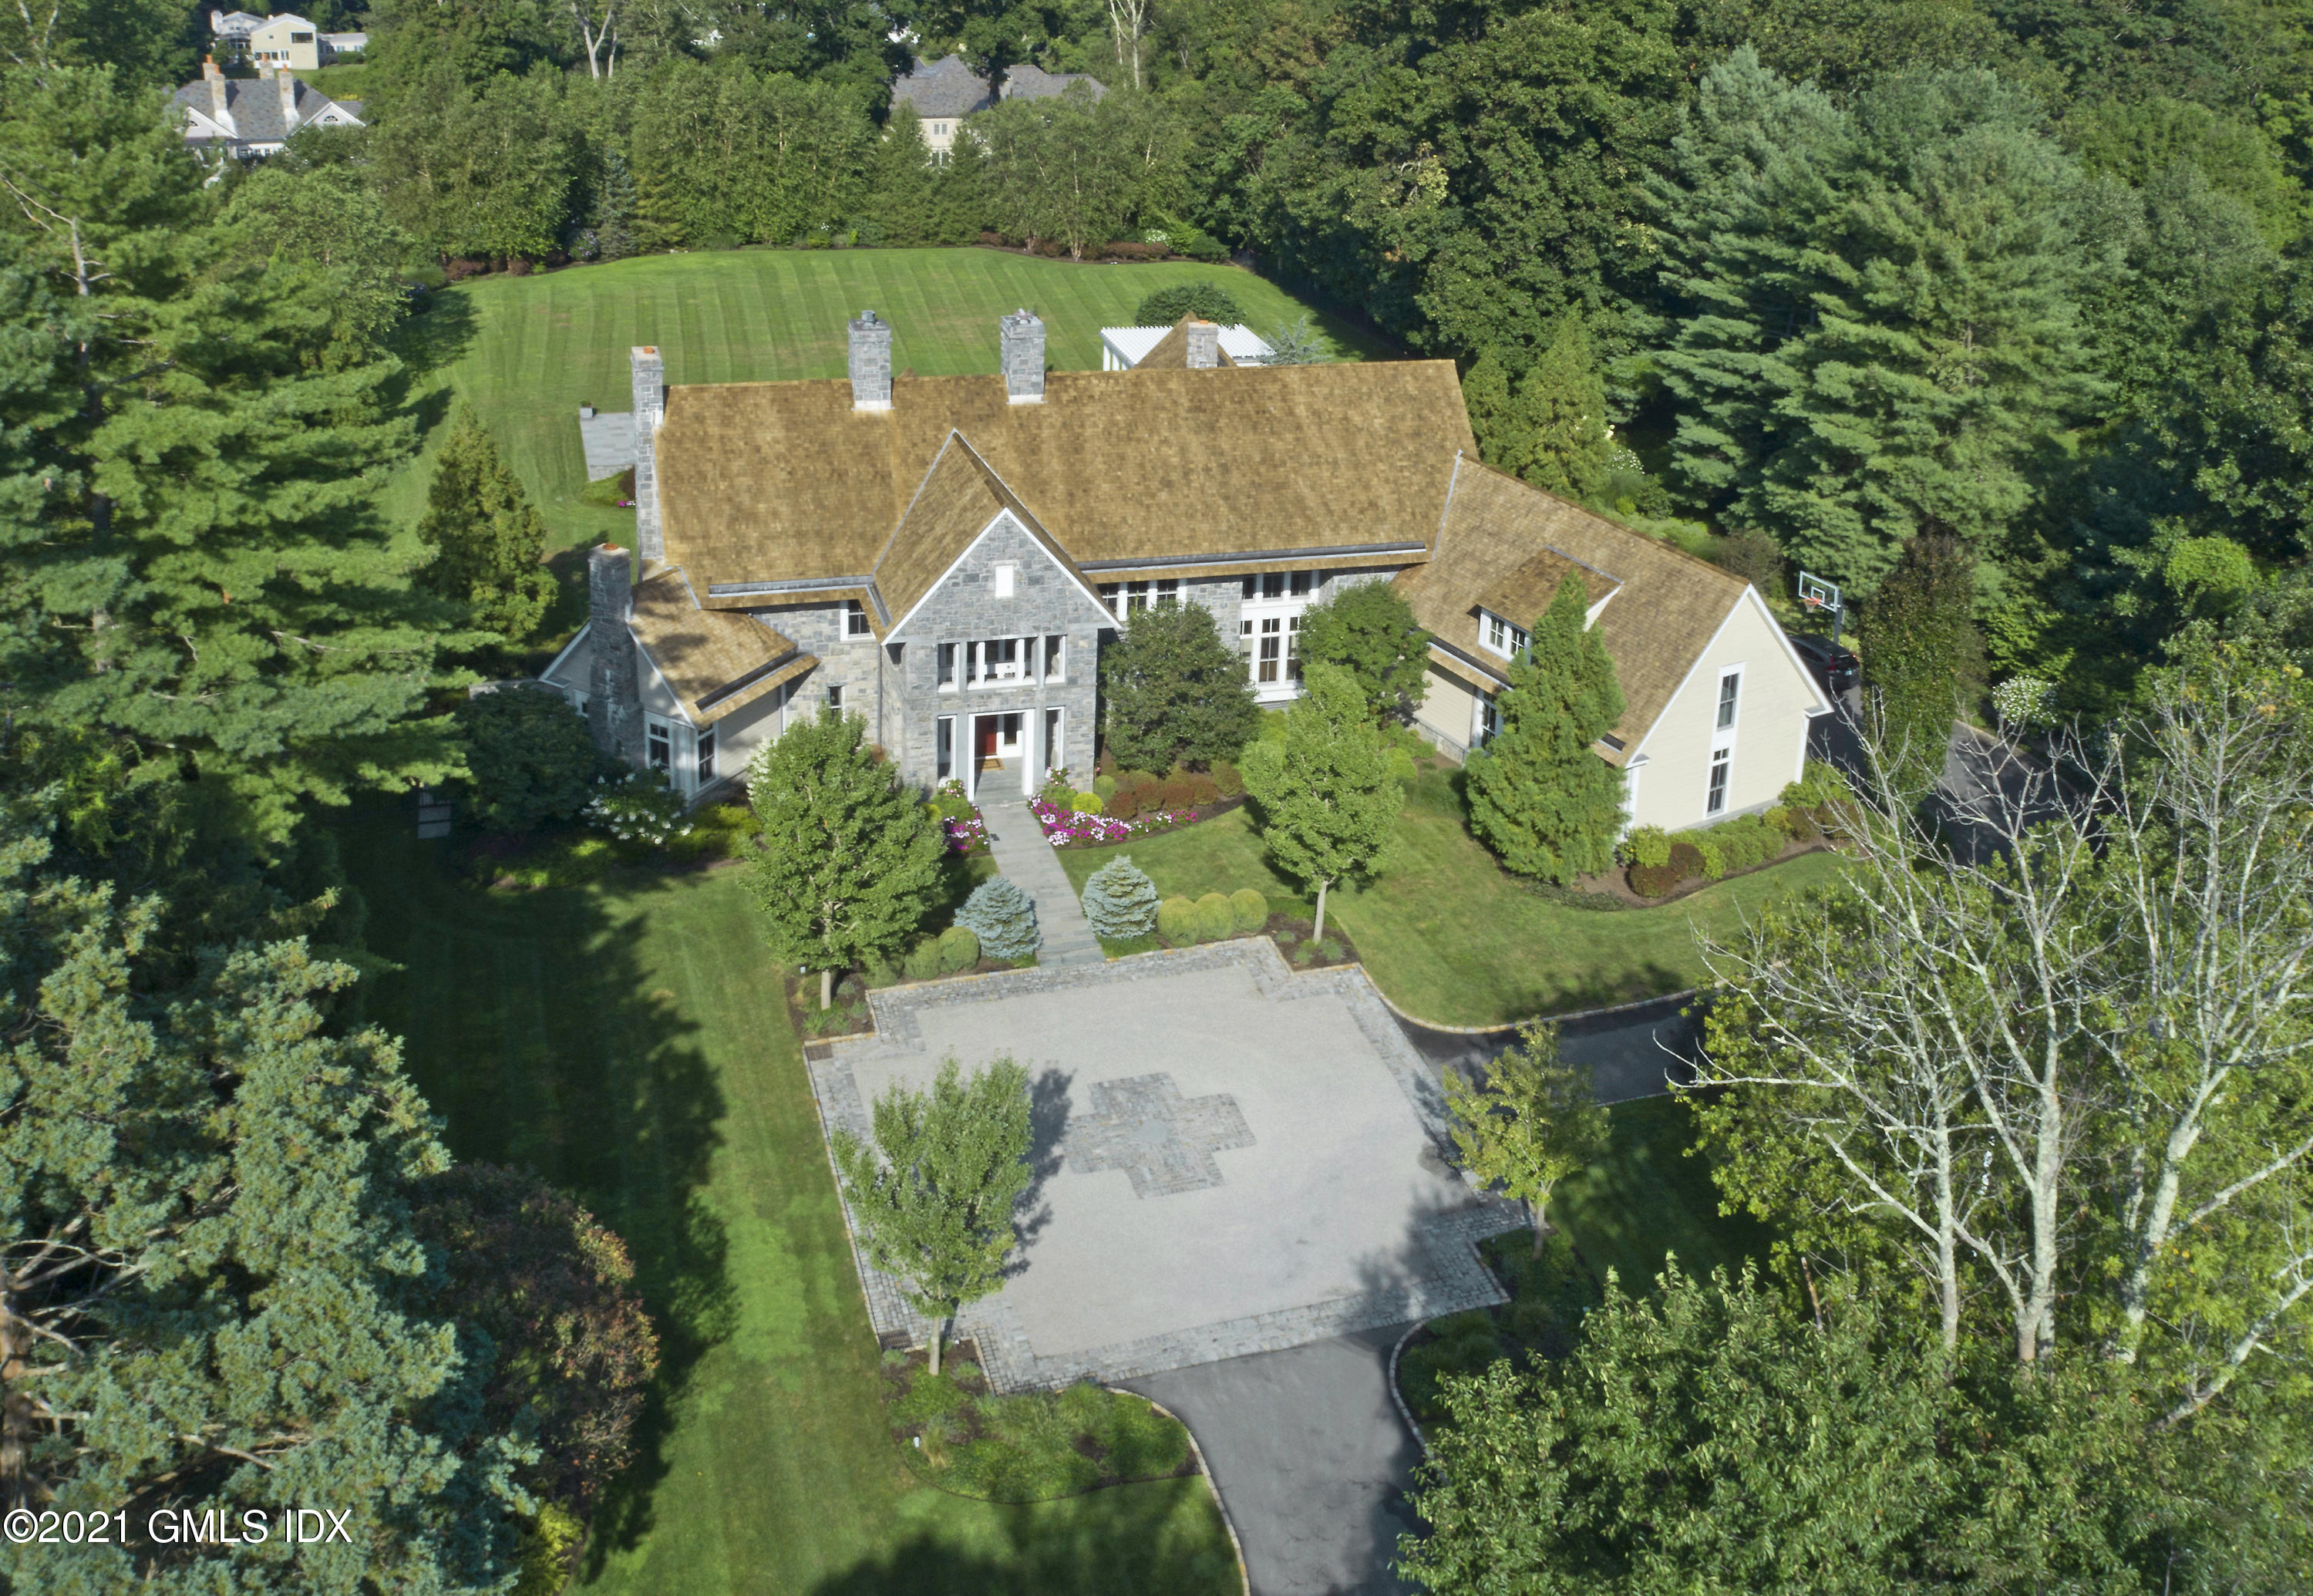 34 Meadowcroft Lane, Greenwich, Connecticut 06830, 5 Bedrooms Bedrooms, ,7 BathroomsBathrooms,Single family,For sale,Meadowcroft,112250